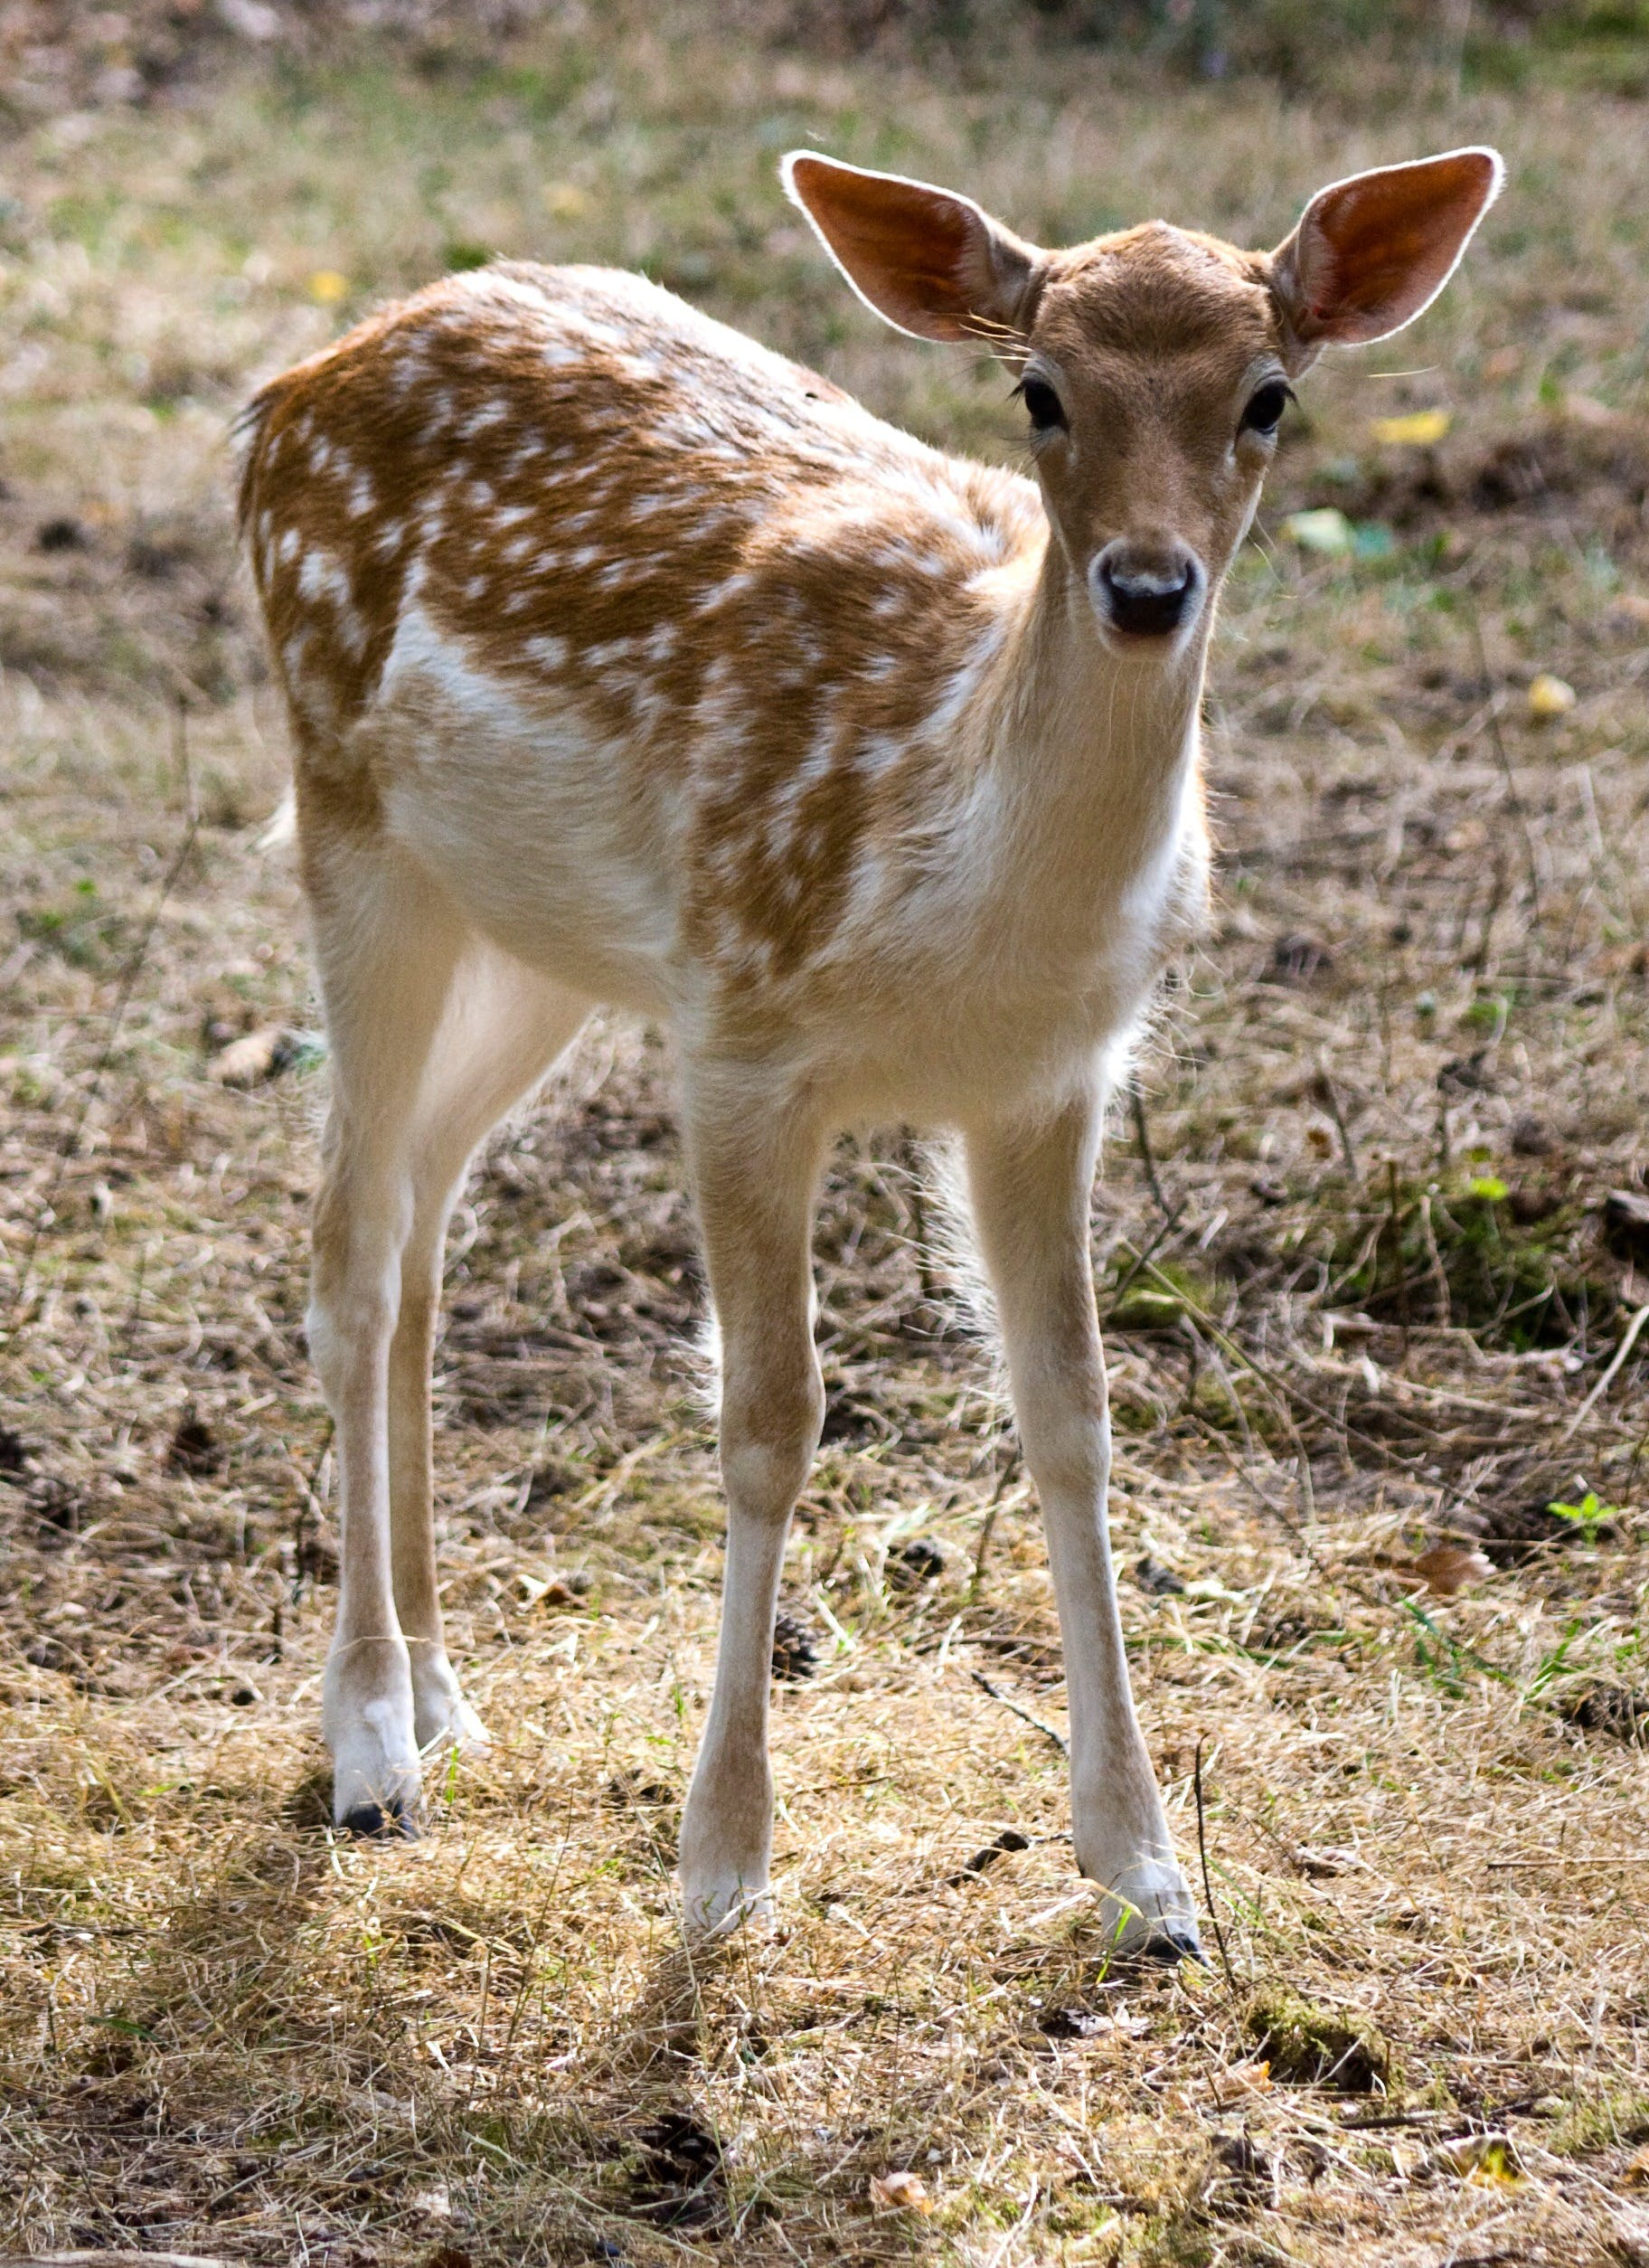 Tan Fawn in Grassy Area